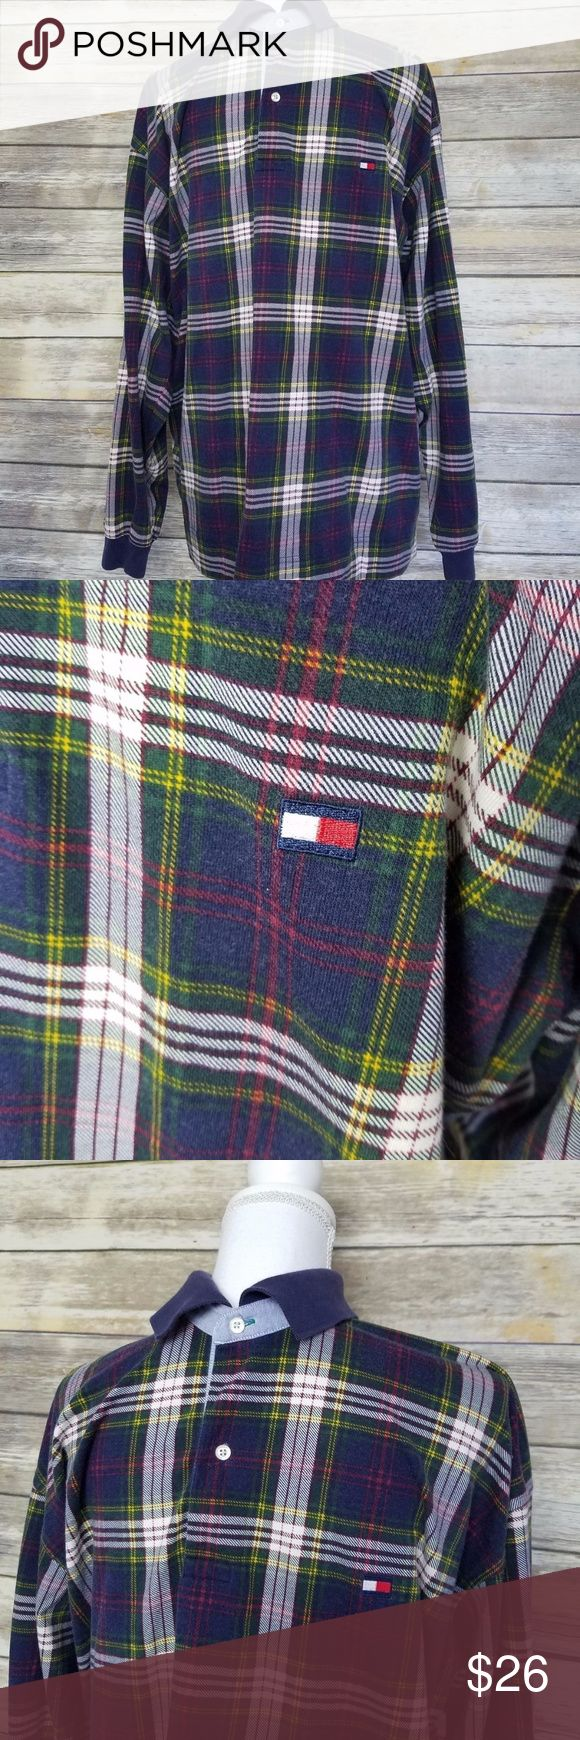 VTG Tommy Hilfiger Long Sleeve Polo Shirt Large L Vintage 90's Tommy Hilfiger Men's Long Sleeve Polo Shirt - Plaid - Size Large L  Great condition! Some signs of use as is typical with vintage items. No major stains or holes.  Item has been machine washed and is stored hanging in a clean smoke free environment.   100% Cotton   Approximate Measurements: Bust (Pit to pit): 24 1/2 inches Length (Middle of neck to bottom hem): 31 inches  Sleeve length (Middle of neck to sleeve cuff): 35 inches…